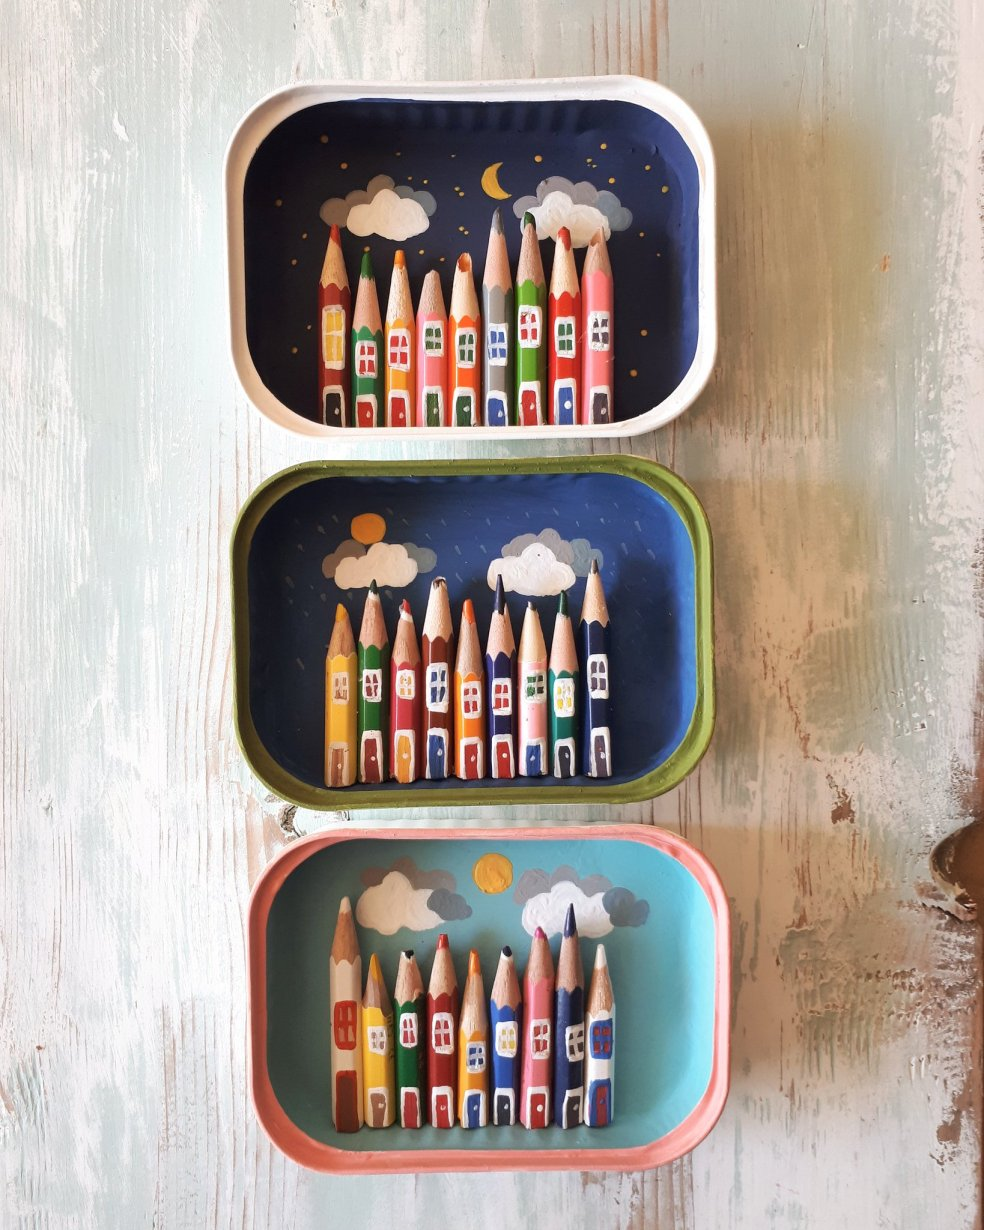 Kostis Grivakis - Pencils in Sardine Cans Recycled